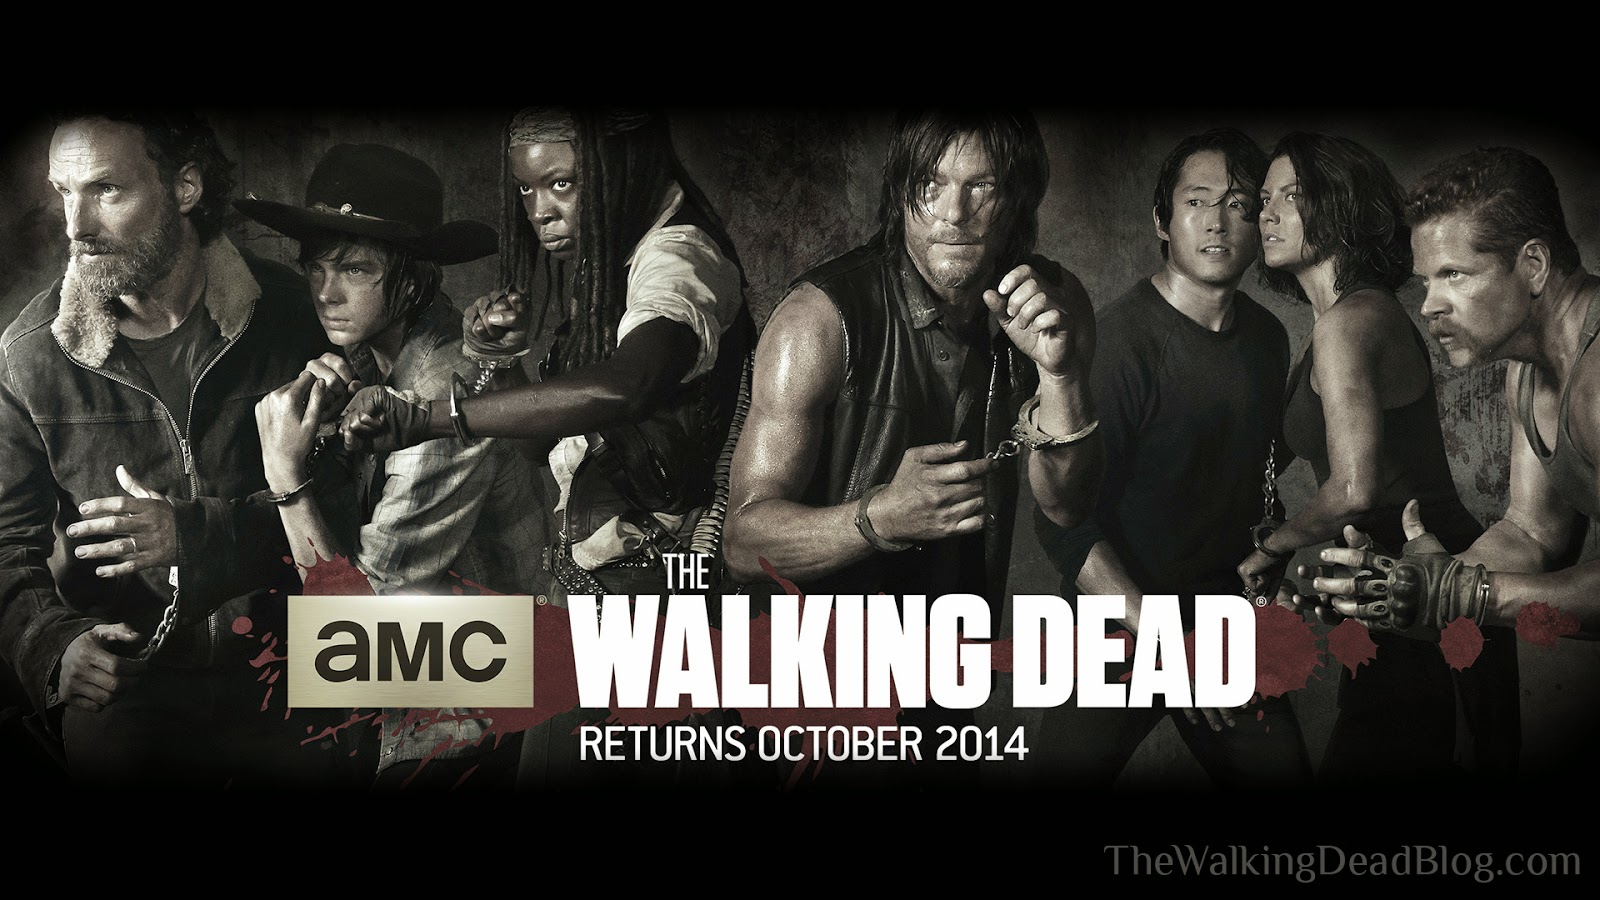 the walking dead blog: the walking dead season 5 wallpaper!